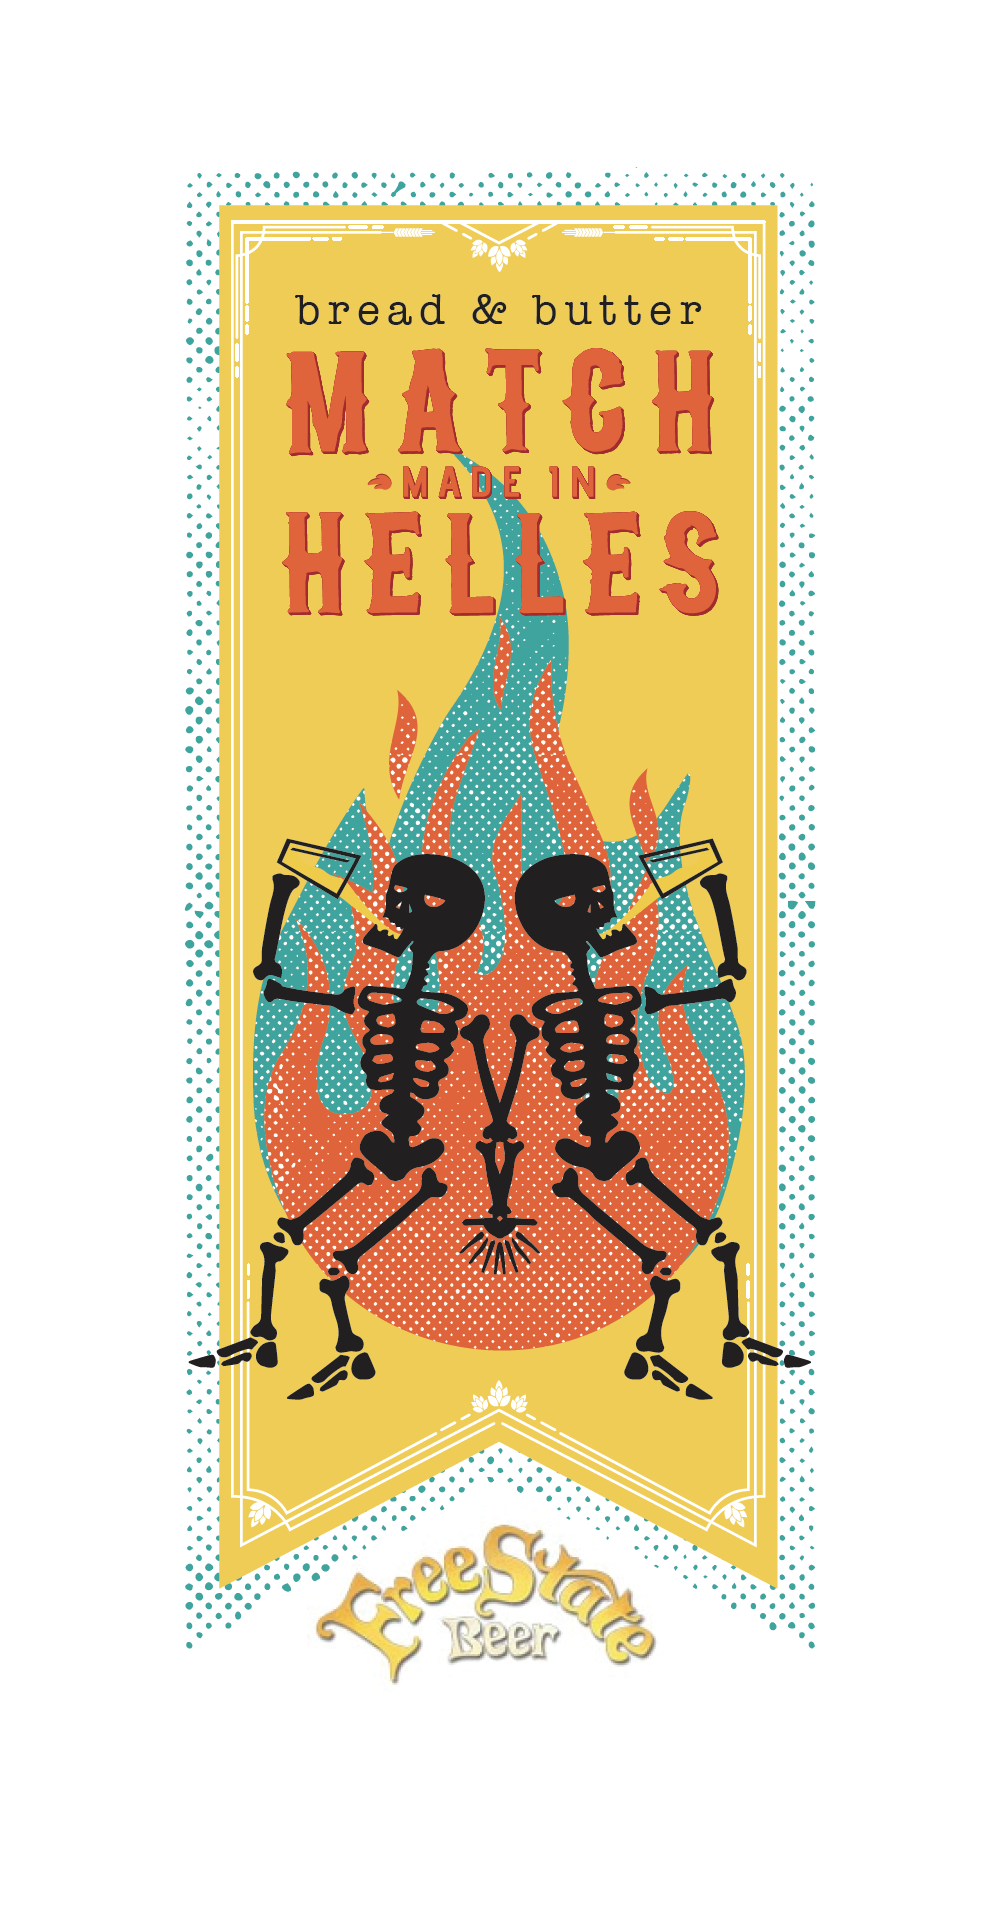 Helles Beer Art